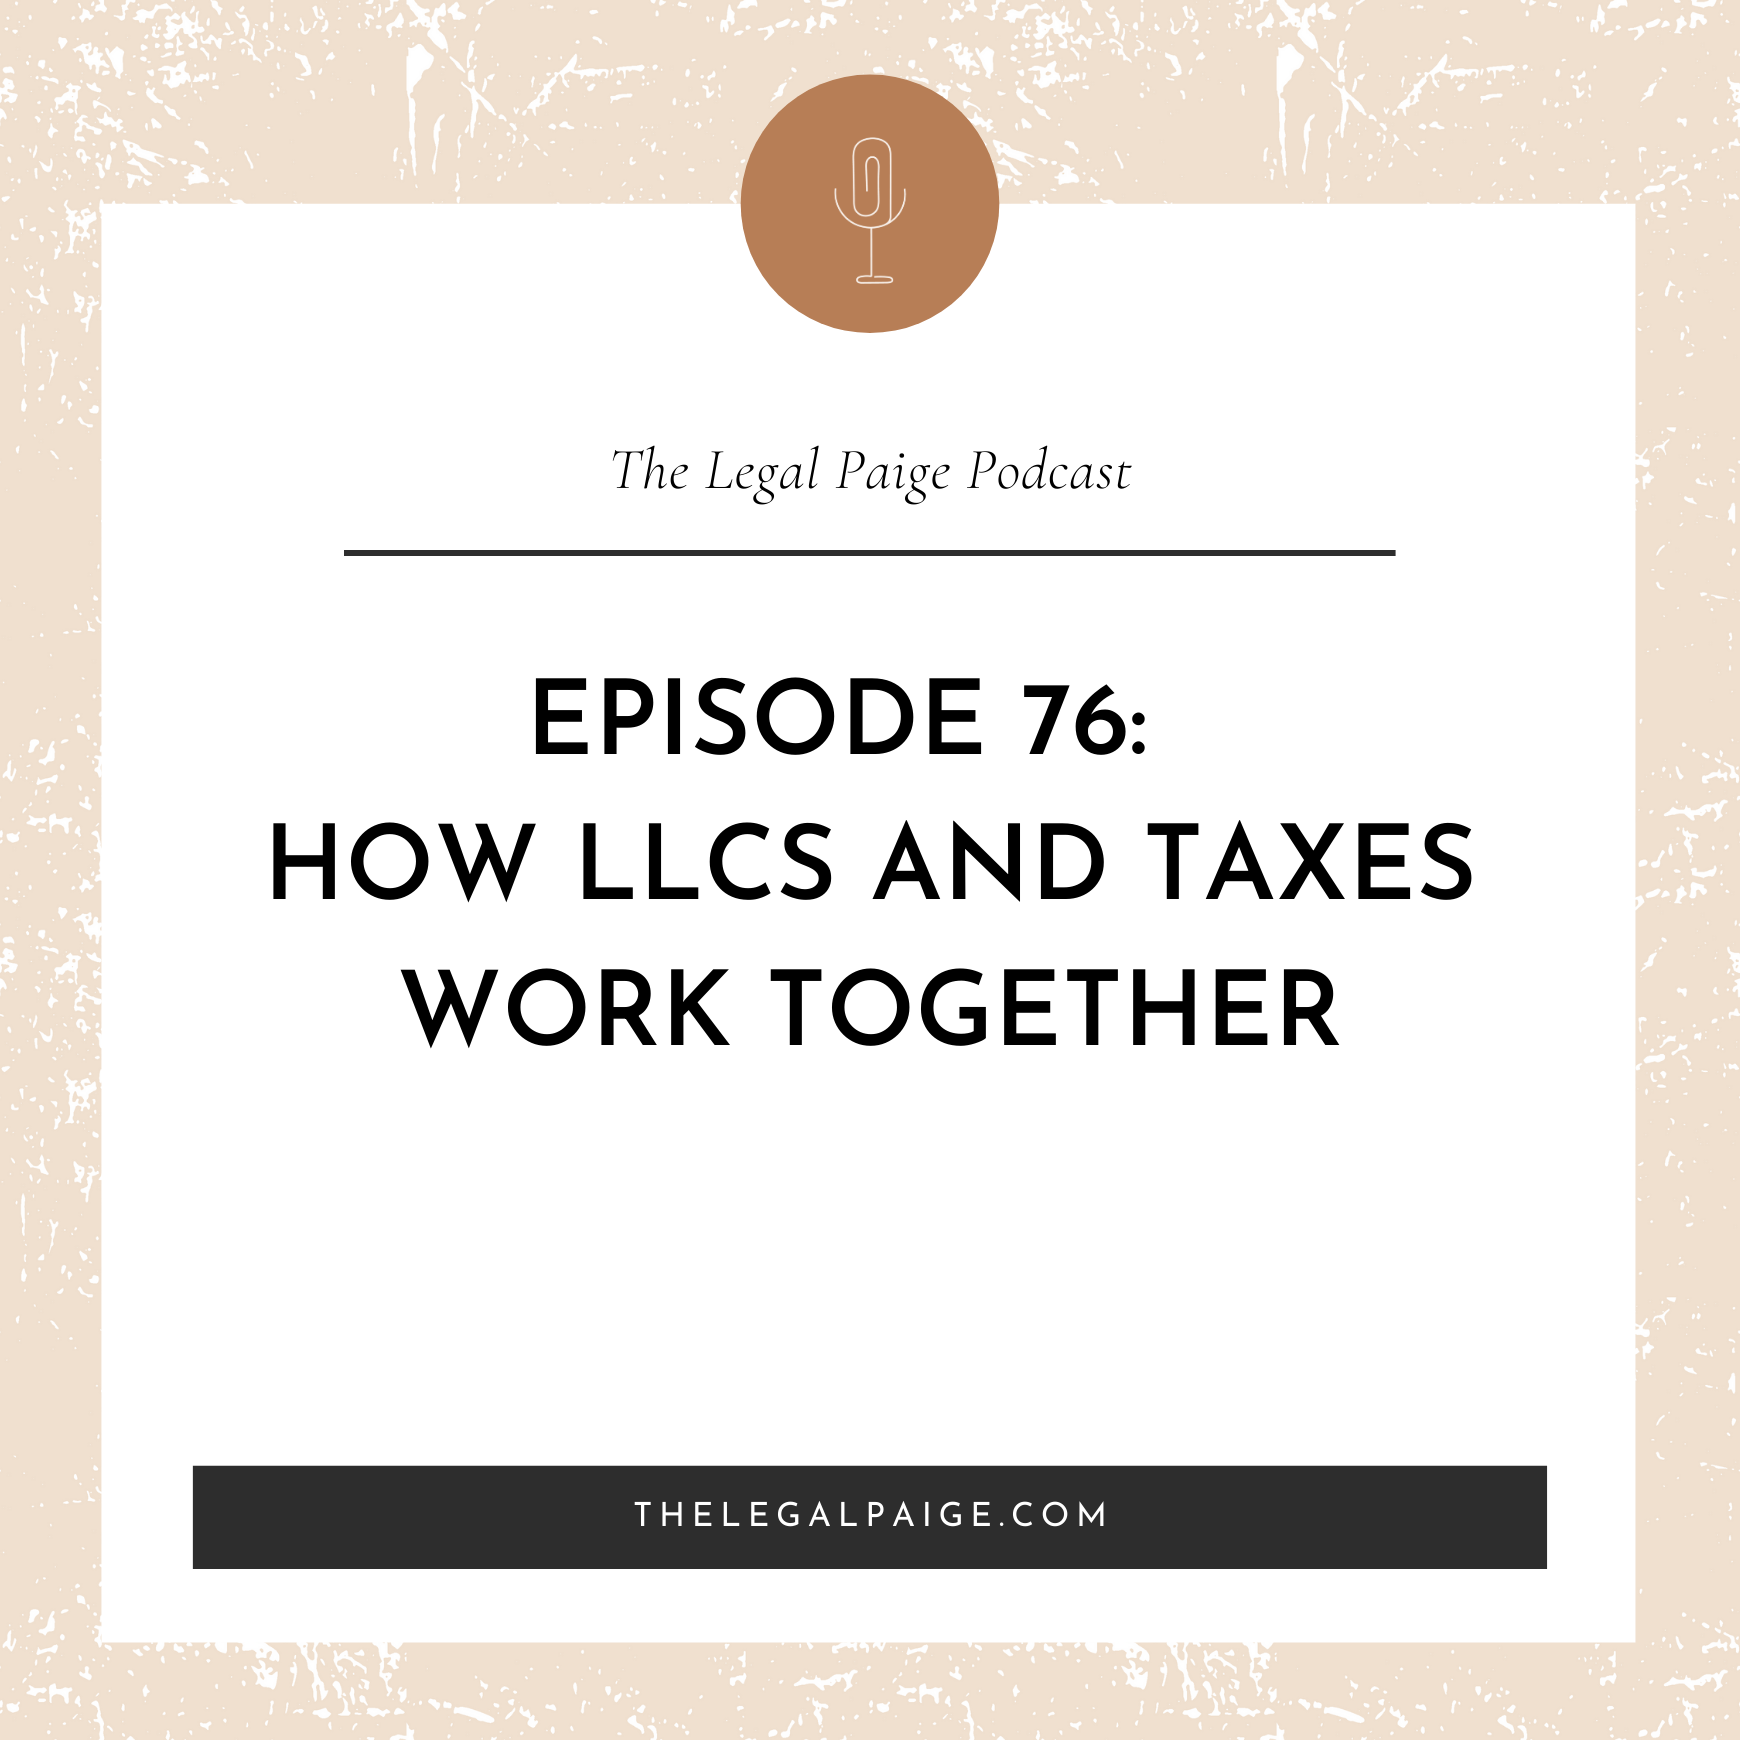 Episode 76: How LLCs and Taxes Work Together